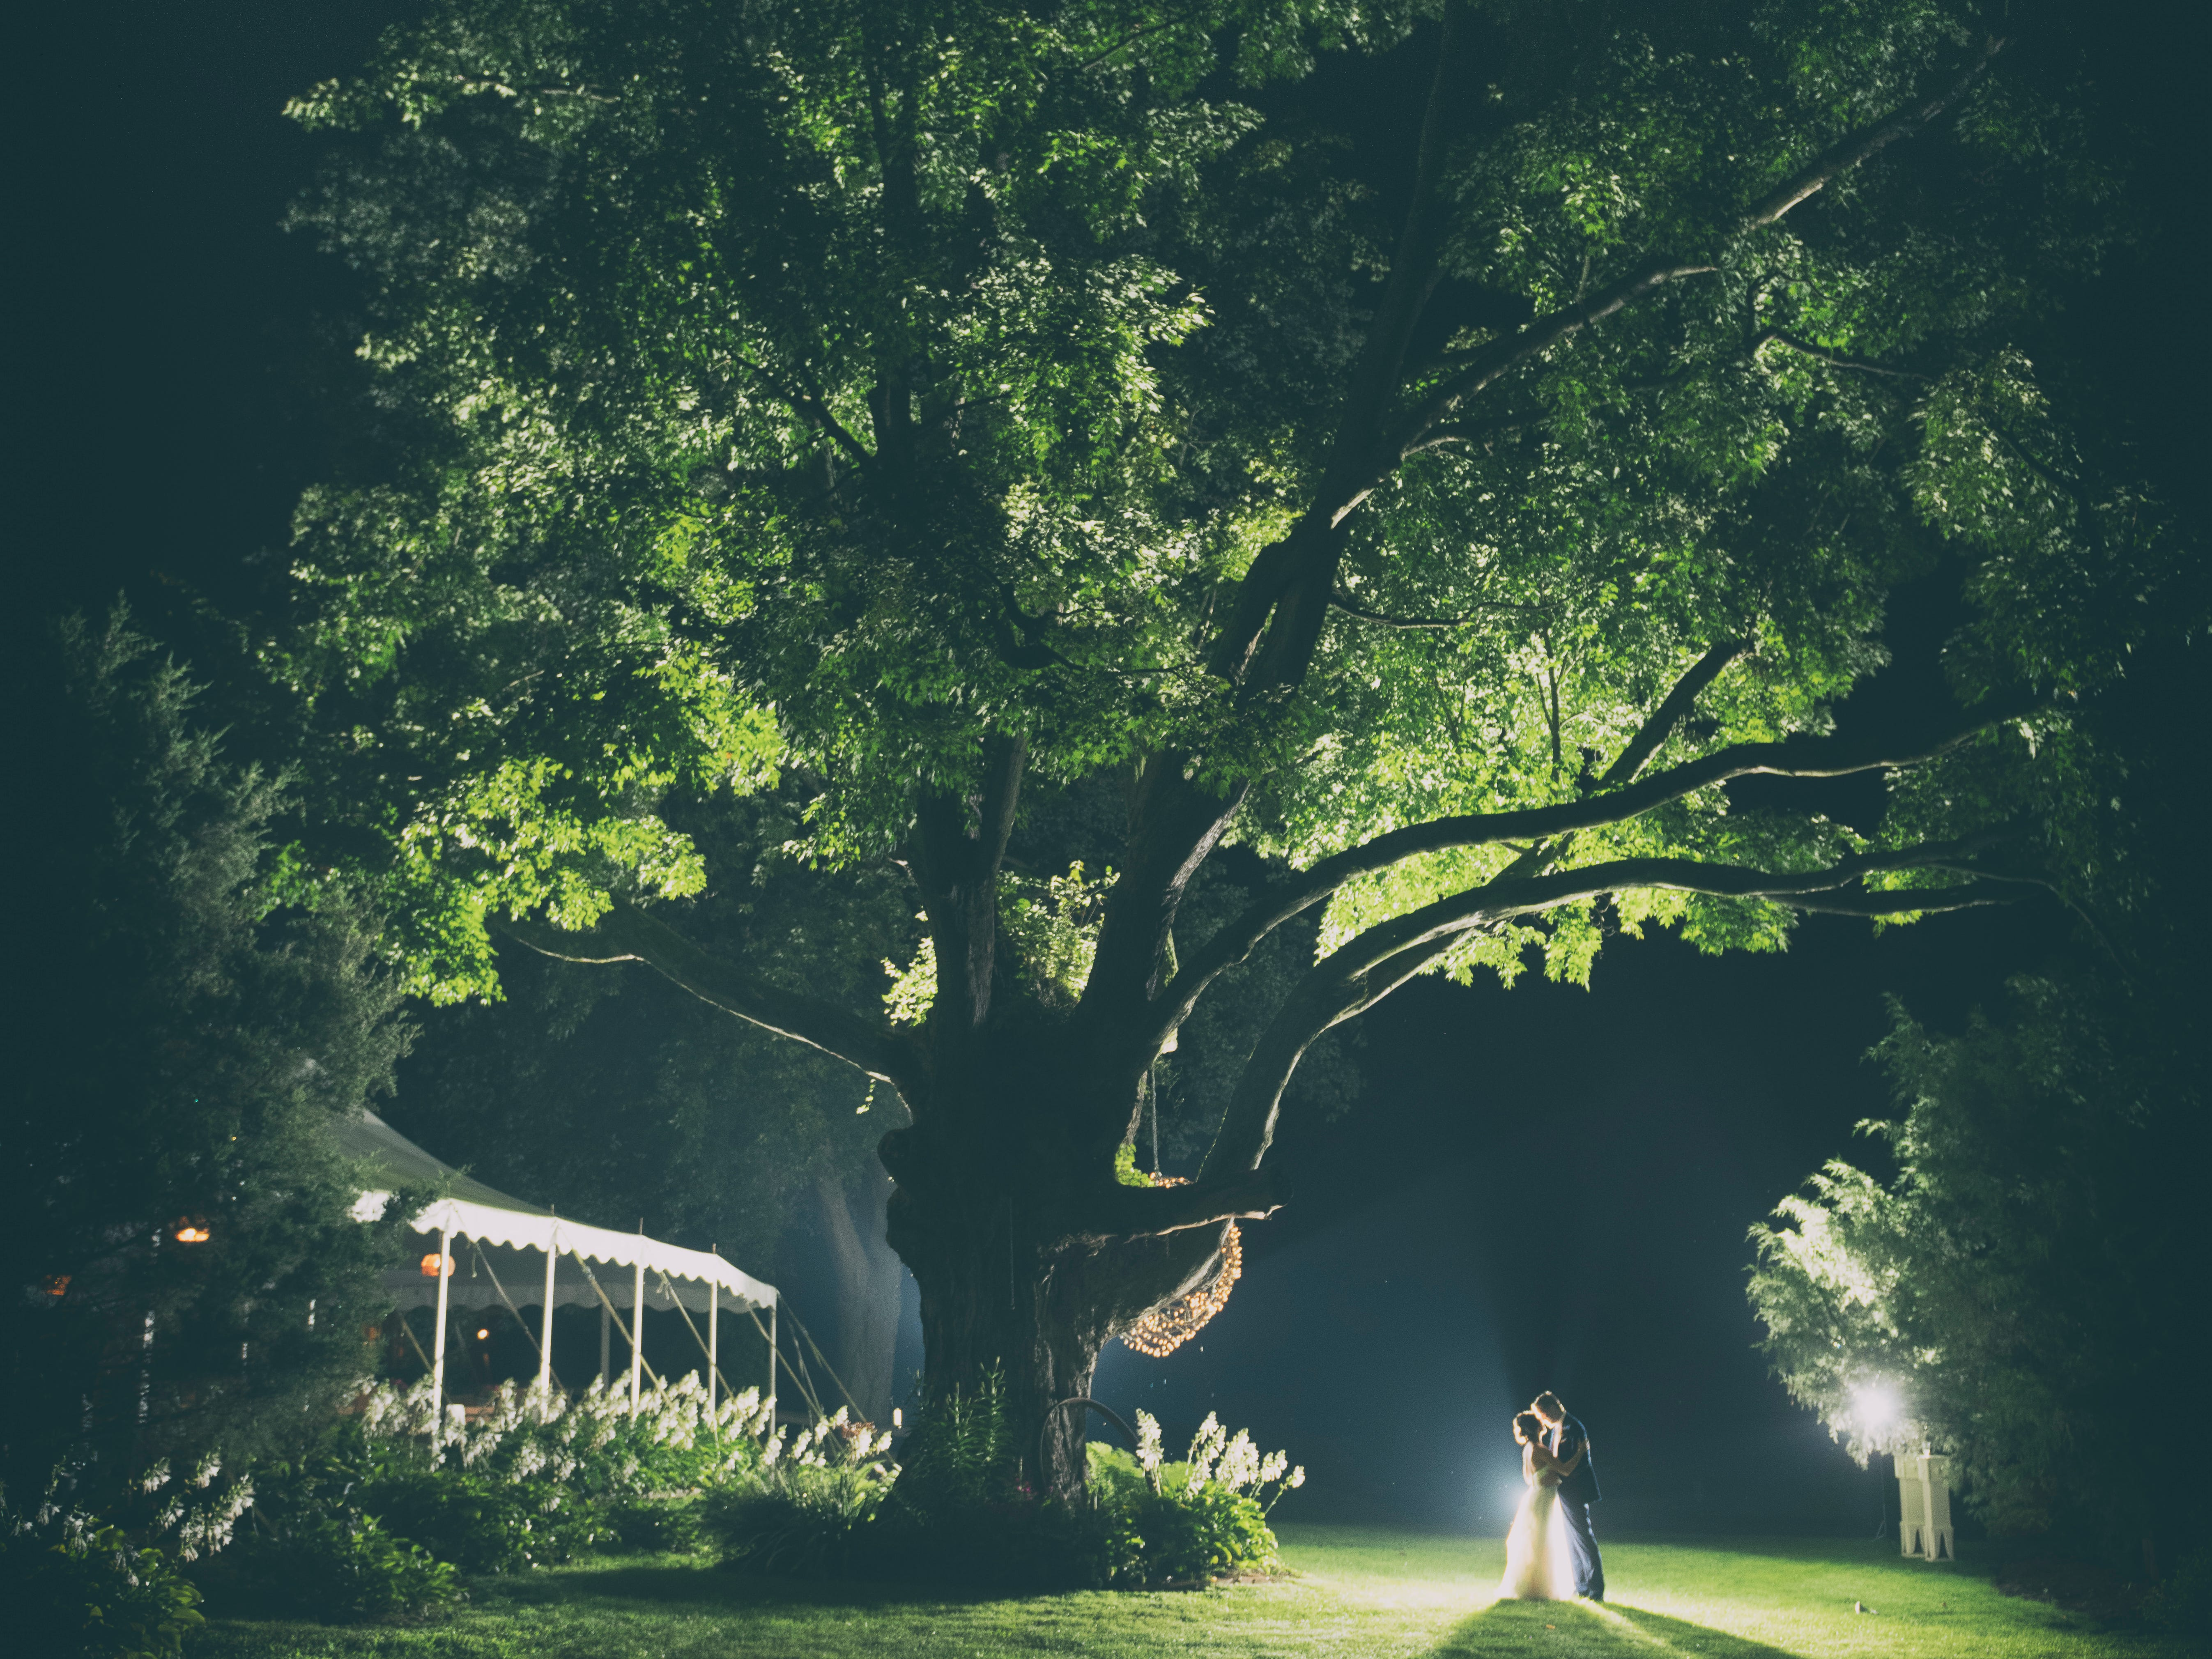 The wedding of Jenny Haight and Chris Copson at Loch Nairn Golf Club in Avondale, Pennsylvania.